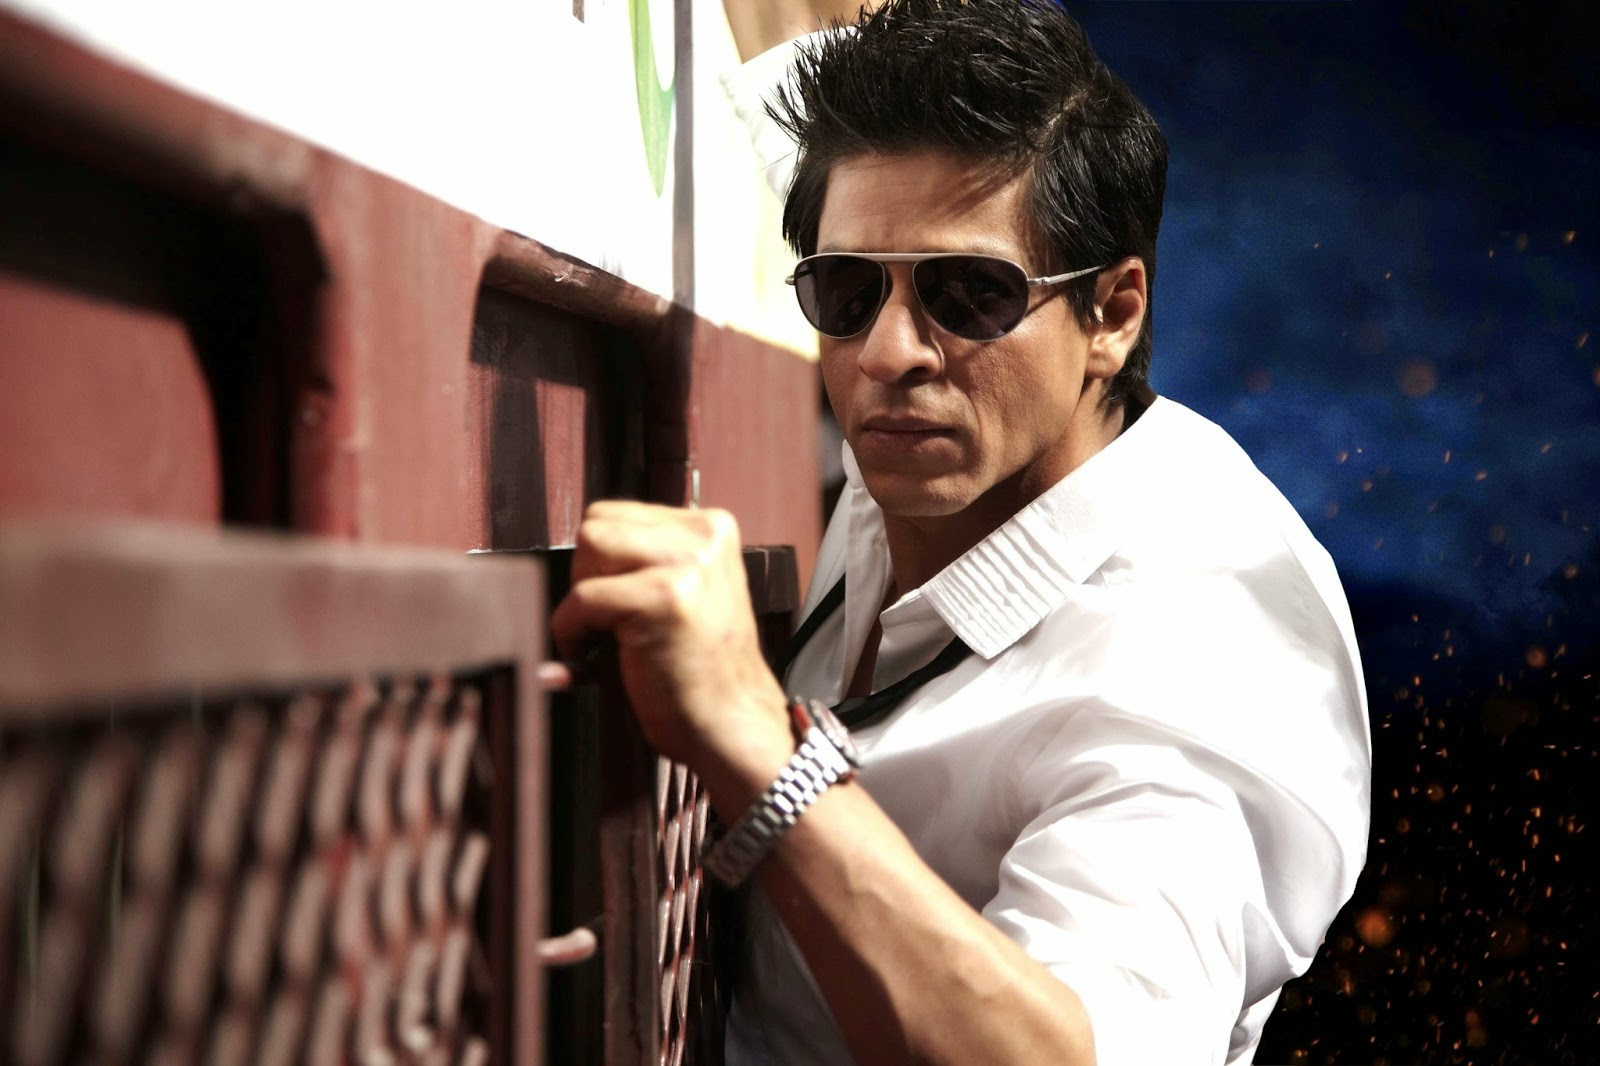 wallpaperszigy: shah rukh khan full hd wallpapers